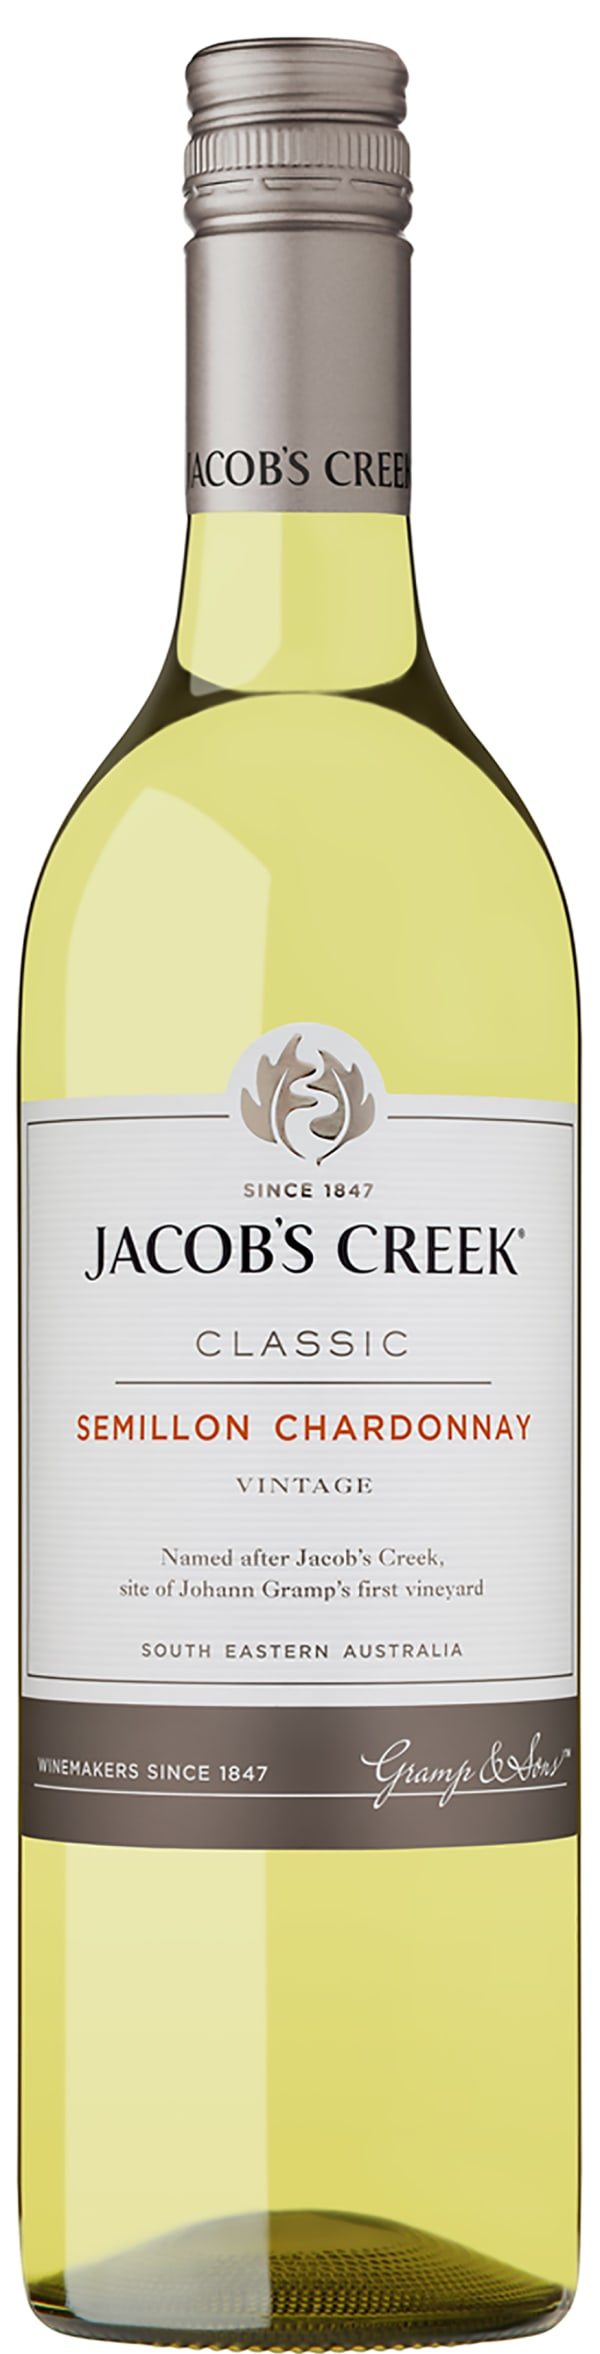 Jacob's Creek Semillon Chardonnay 2019